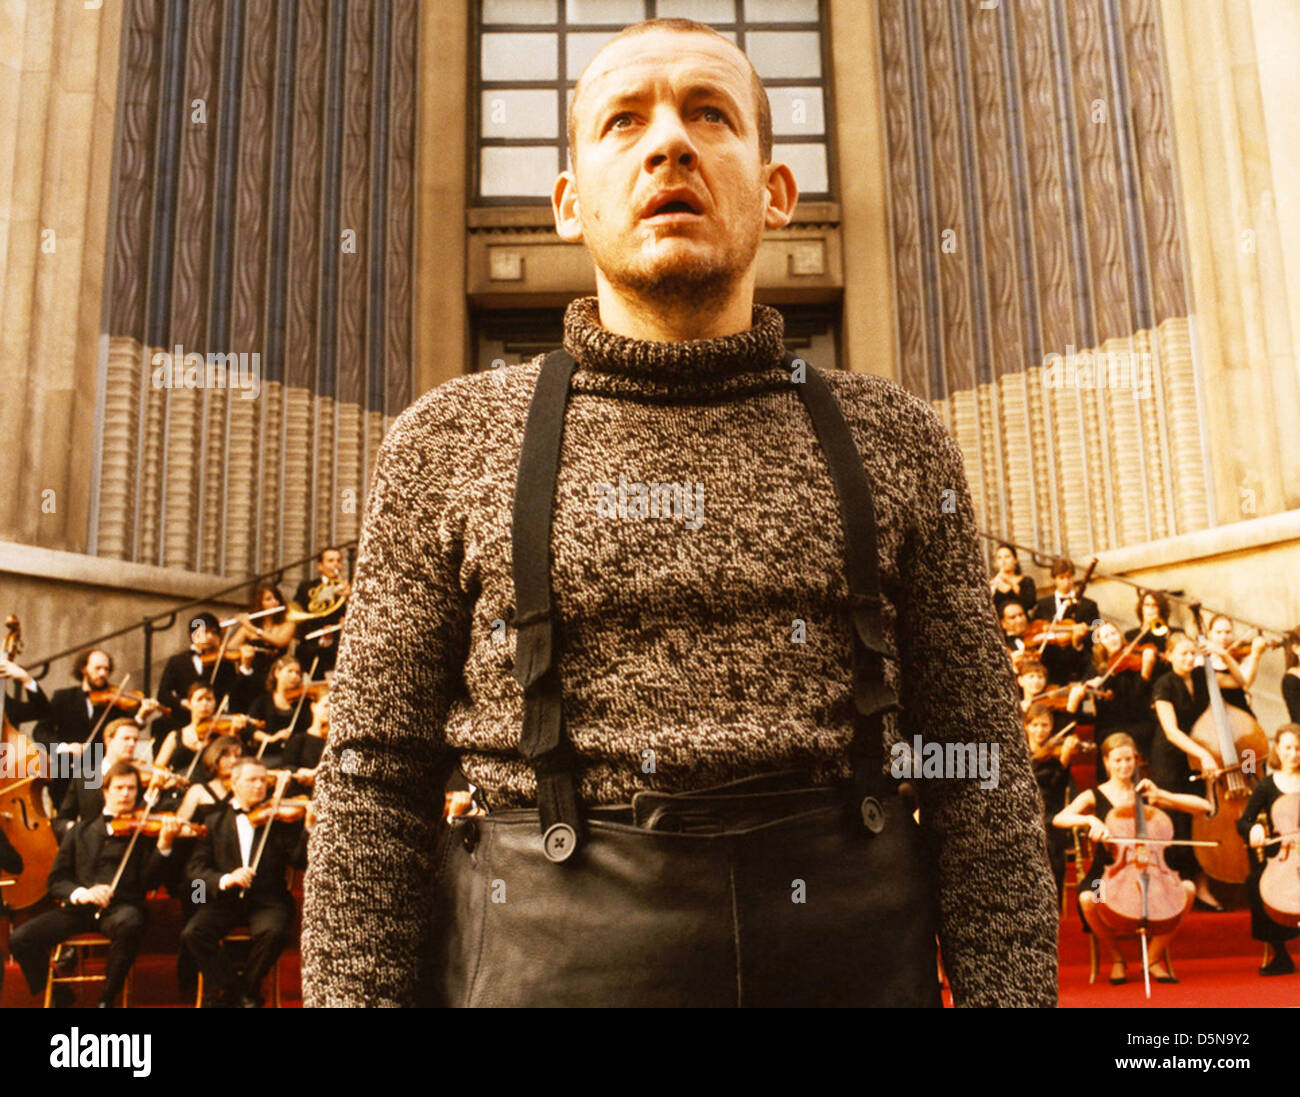 Dany Boon Stock Photos & Dany Boon Stock Images - Alamy